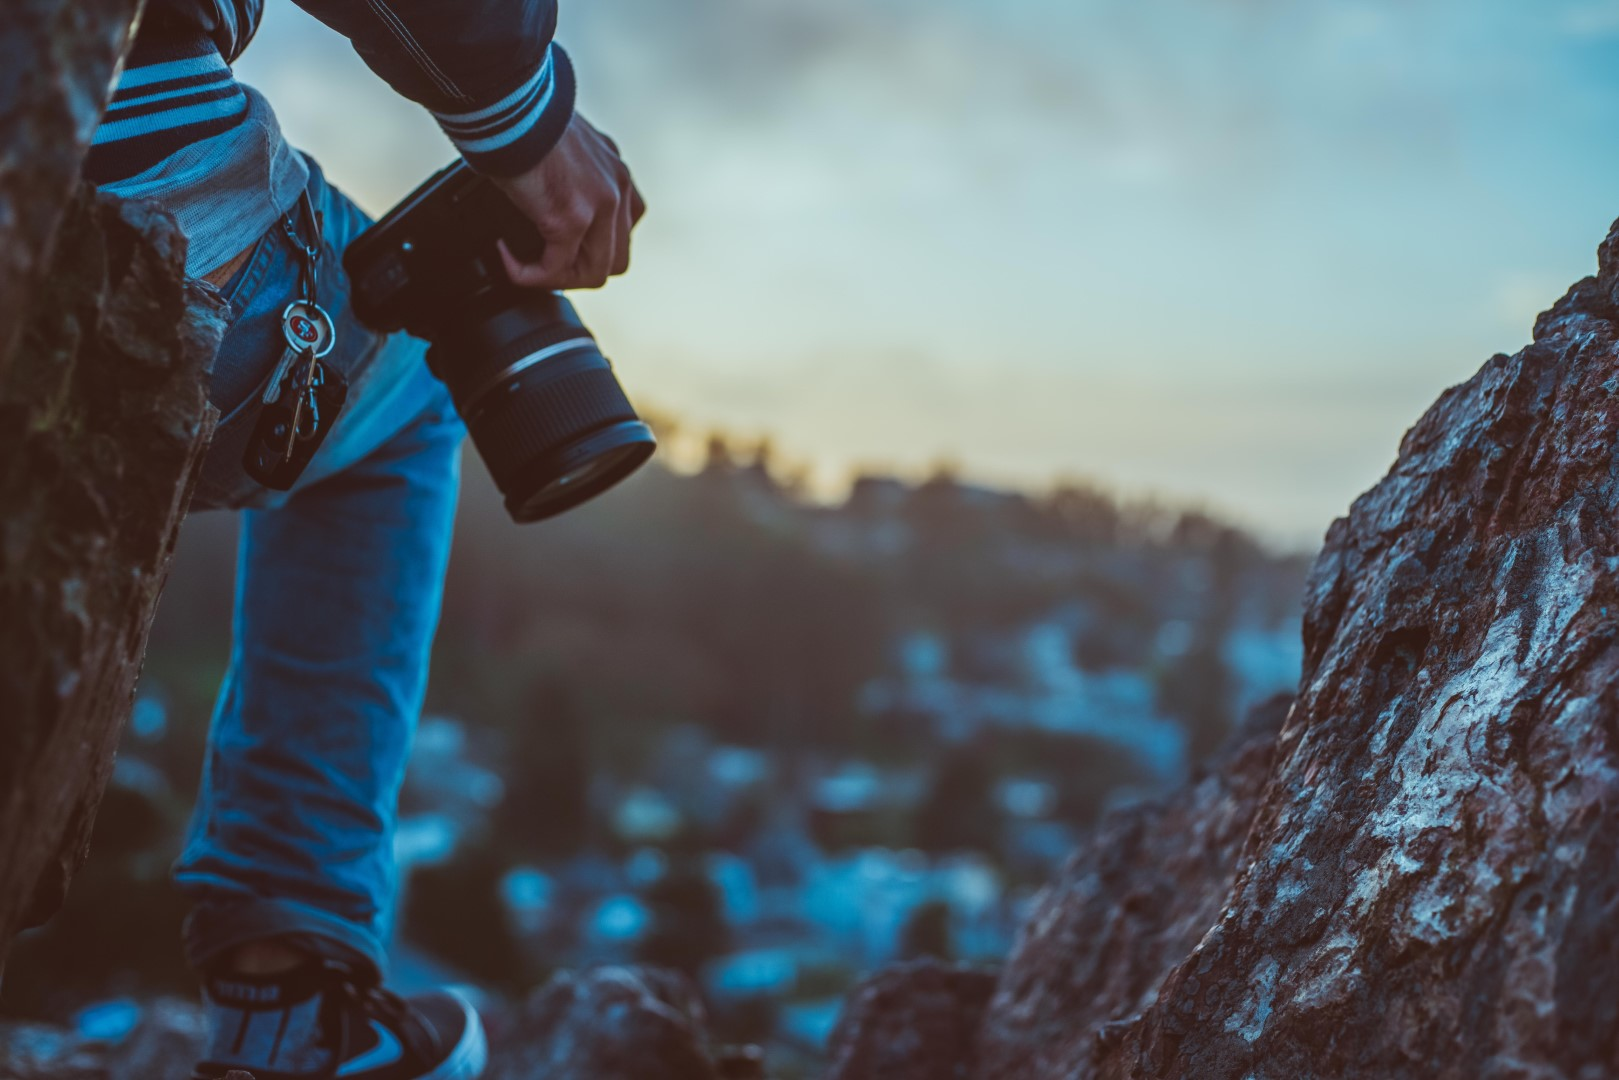 How to start in stock photography